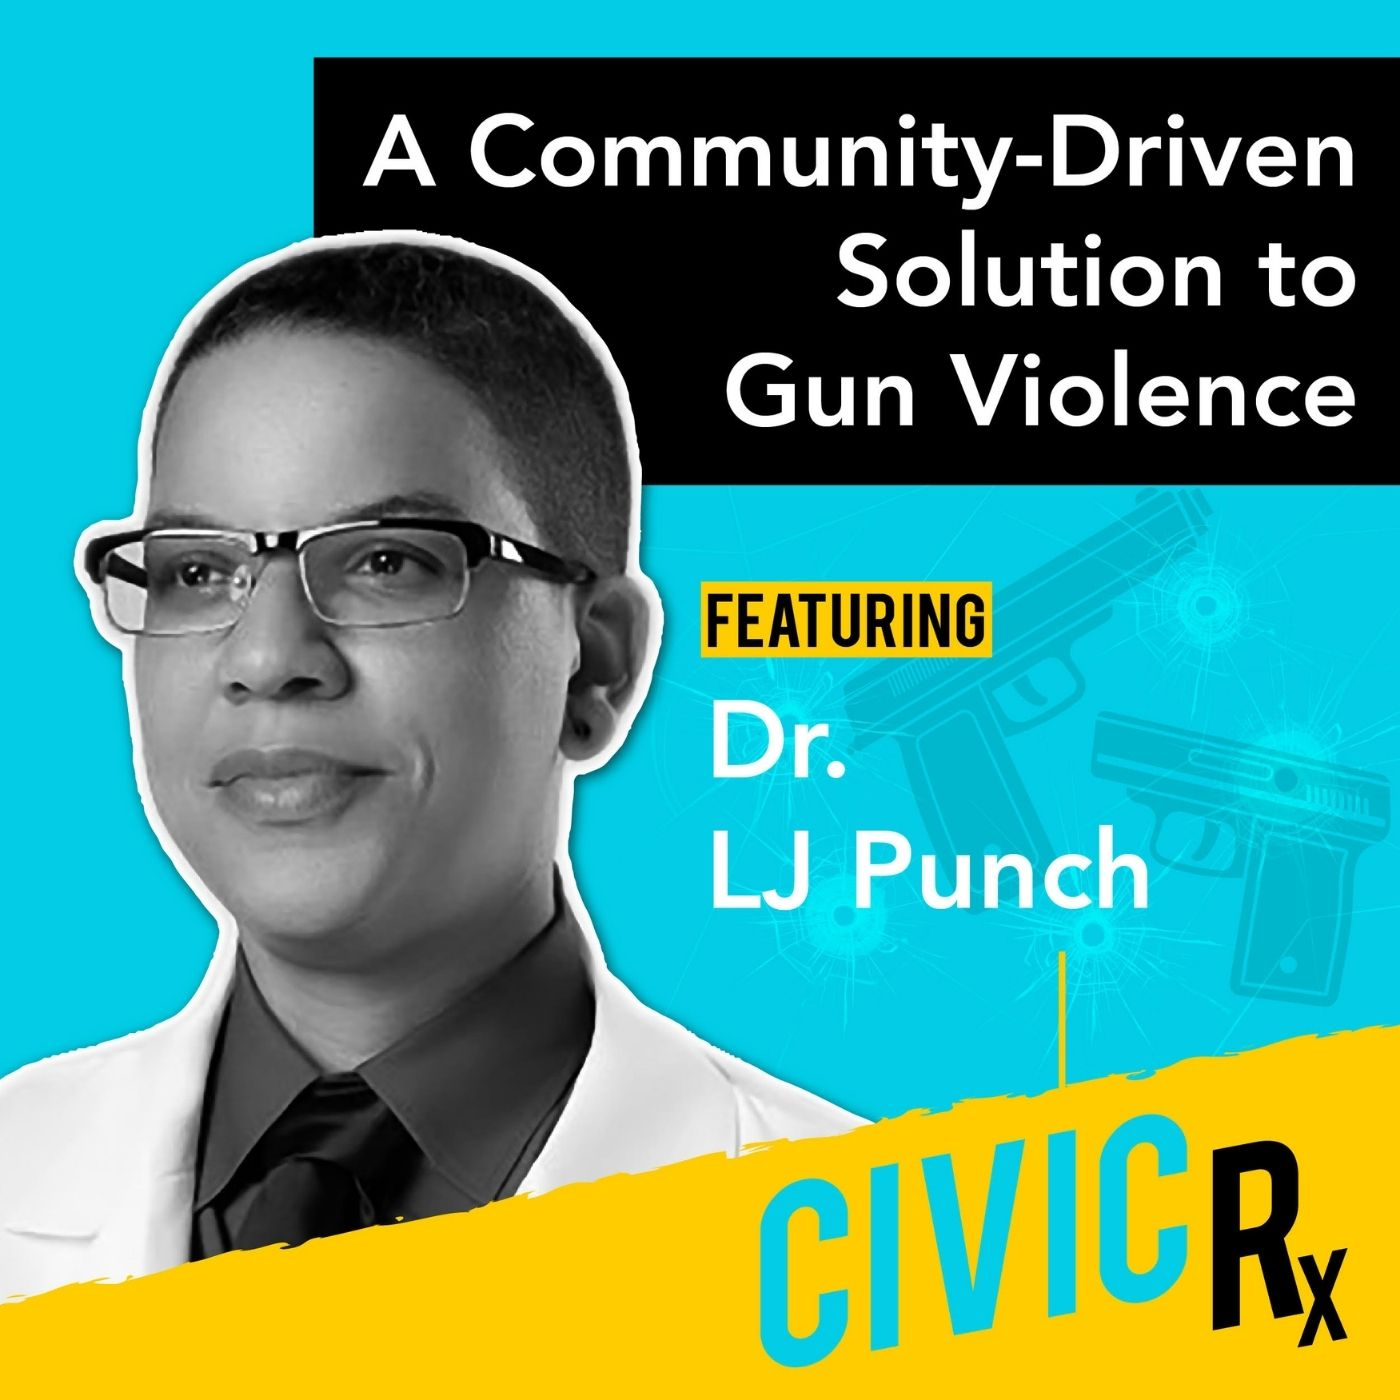 Highlighting a community-driven approach to gun safety, featuring Dr. LJ Punch (EP.17)